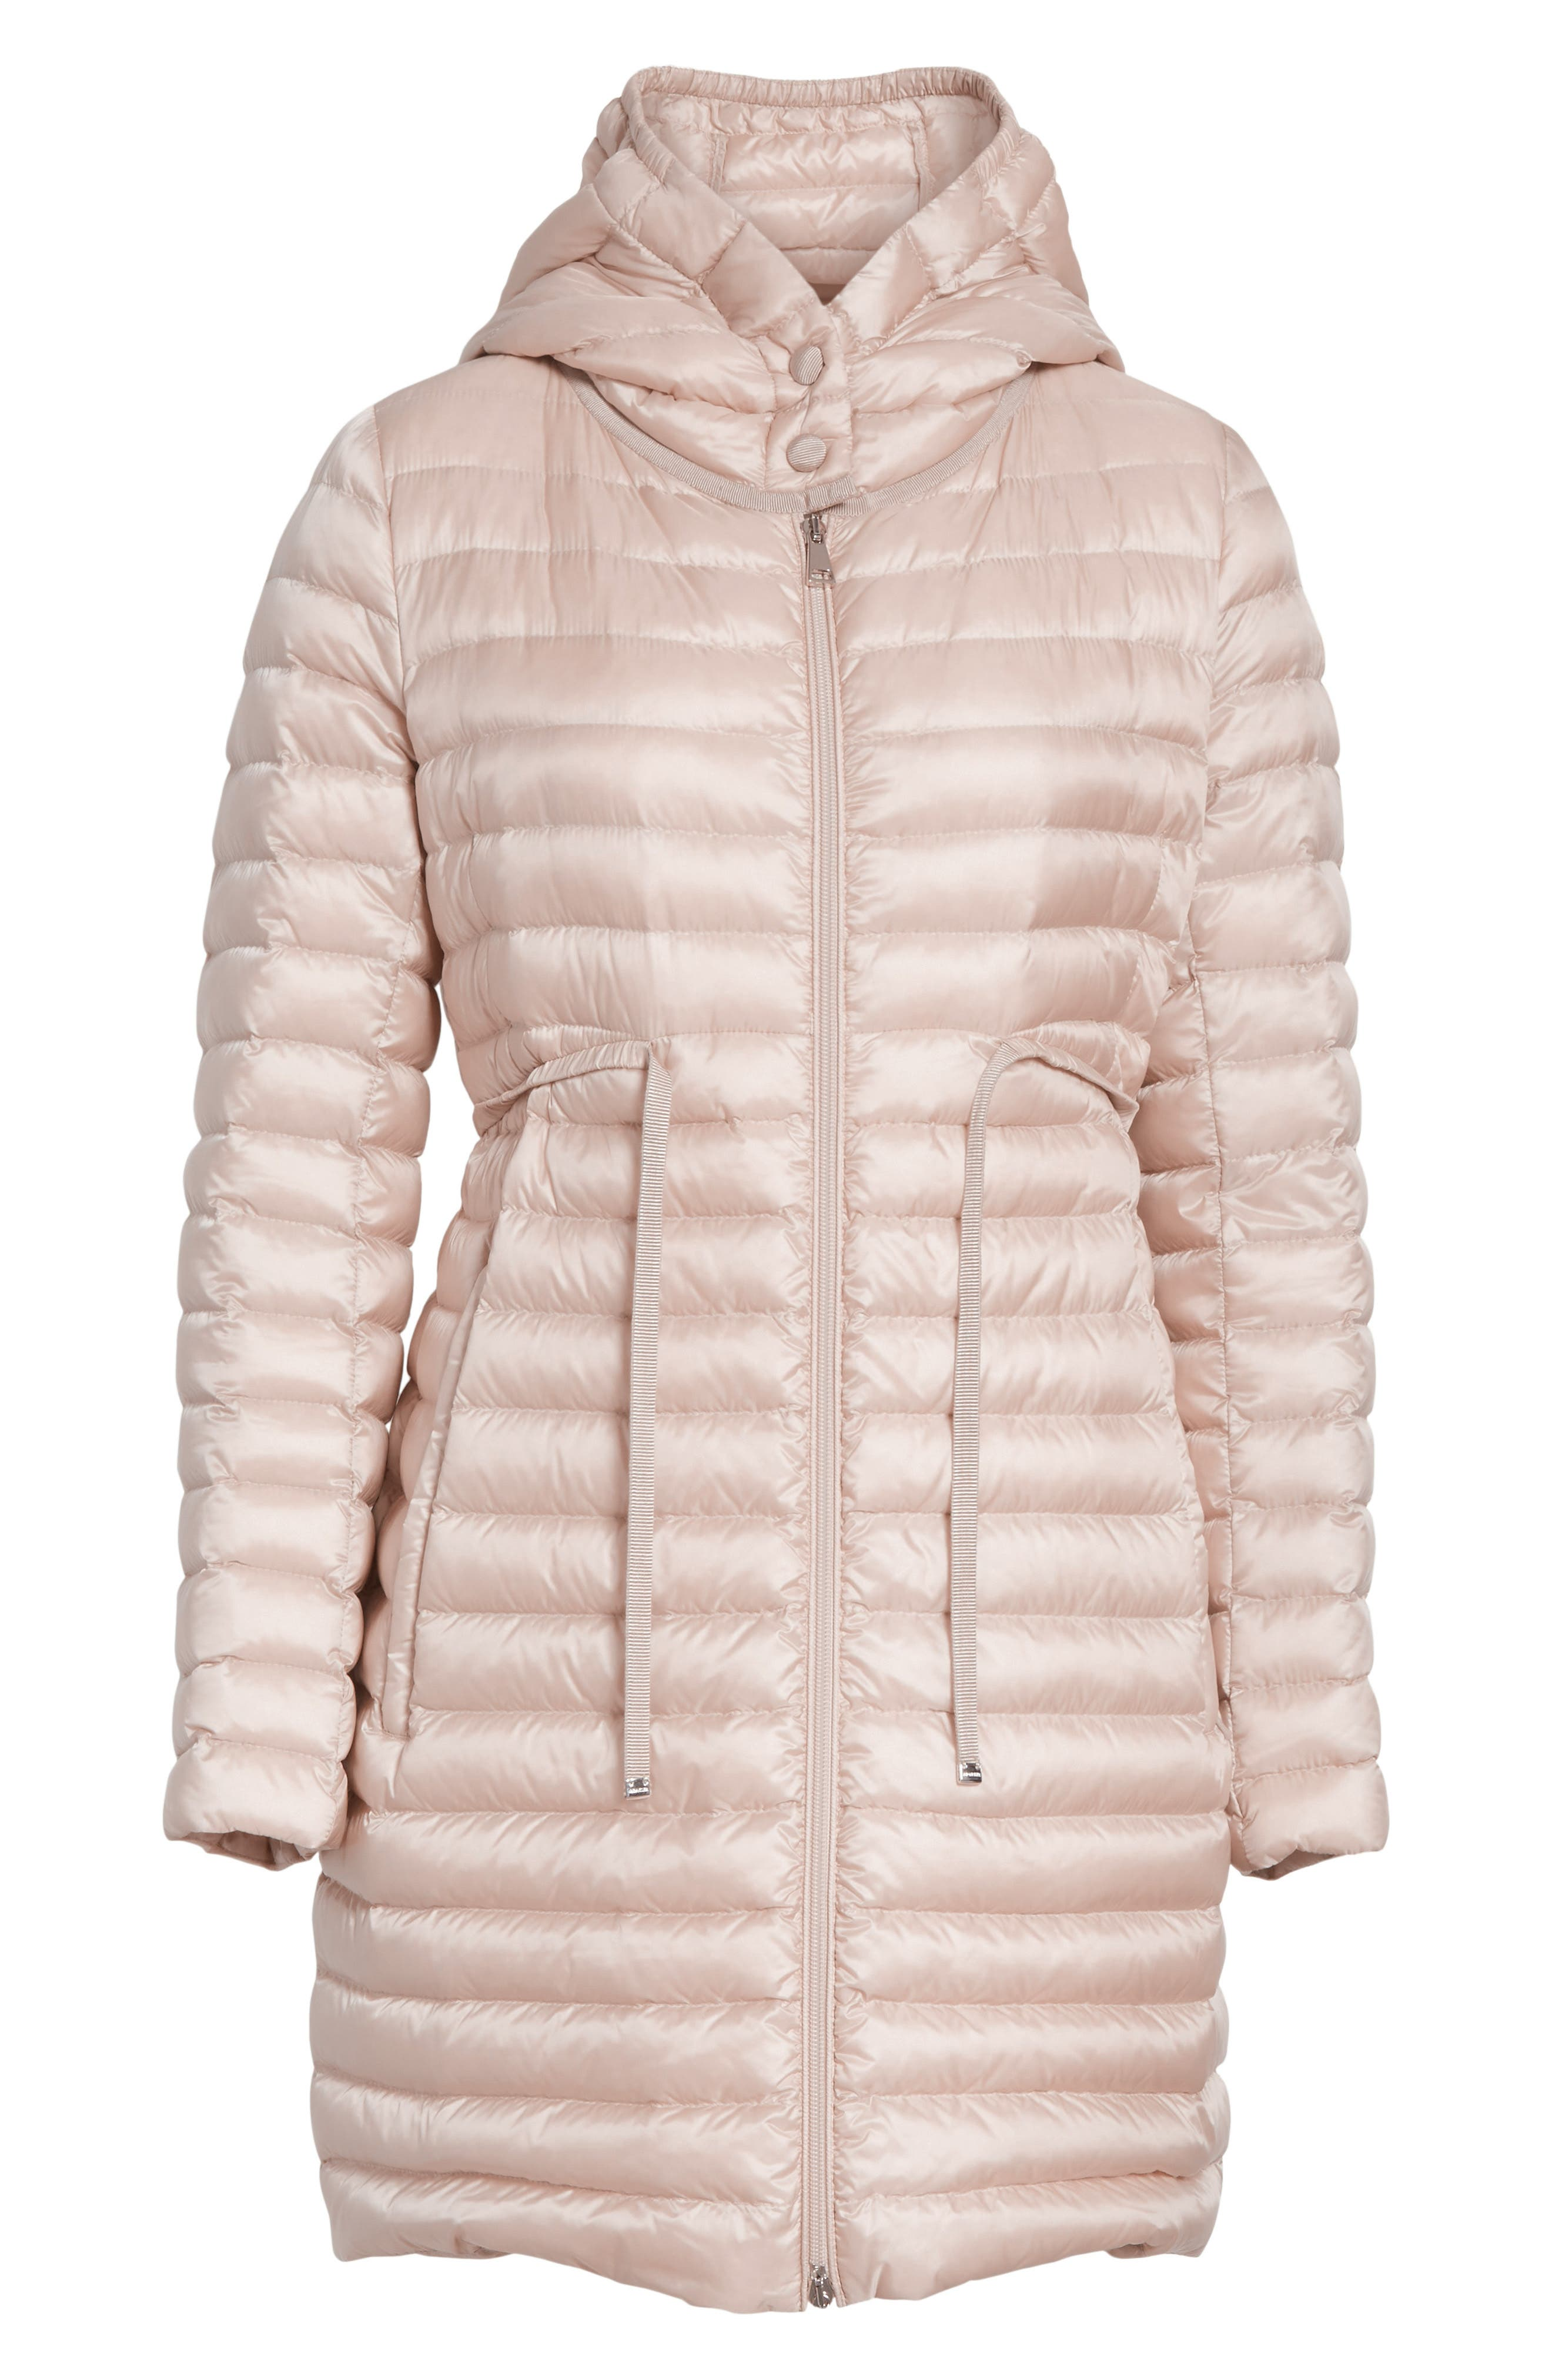 Barbel Water Resistant Long Hooded Down Jacket,                             Alternate thumbnail 6, color,                             Blush